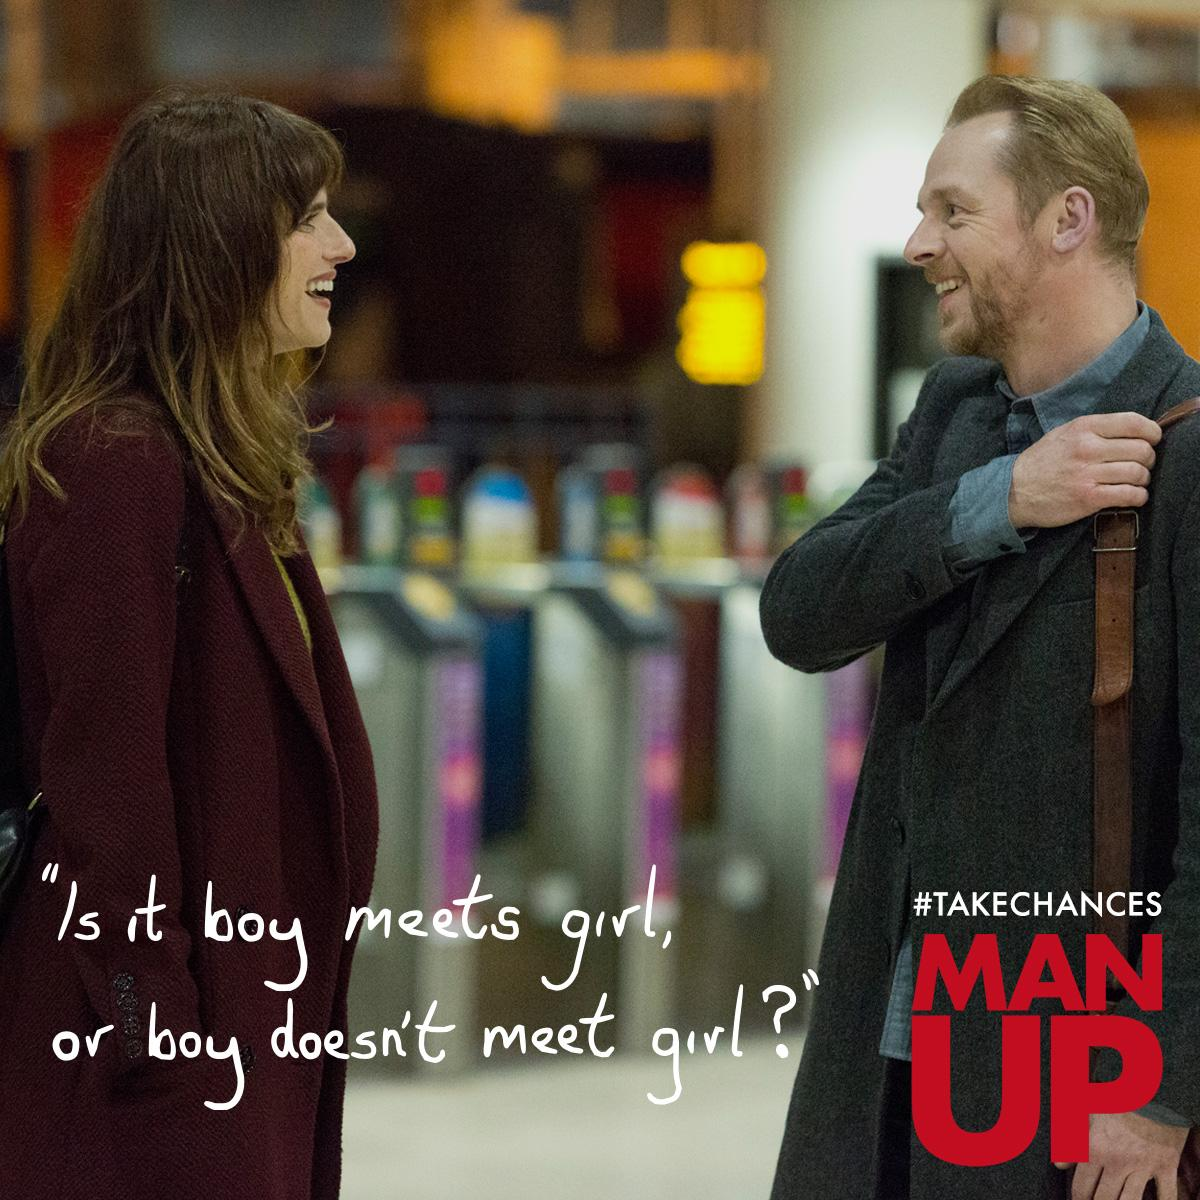 RT @ManUpFilm: Want to see MAN UP tonight in London? Follow @ManUpFilm and RT to win tix for a special preview. #TakeChancesTuesday http://…